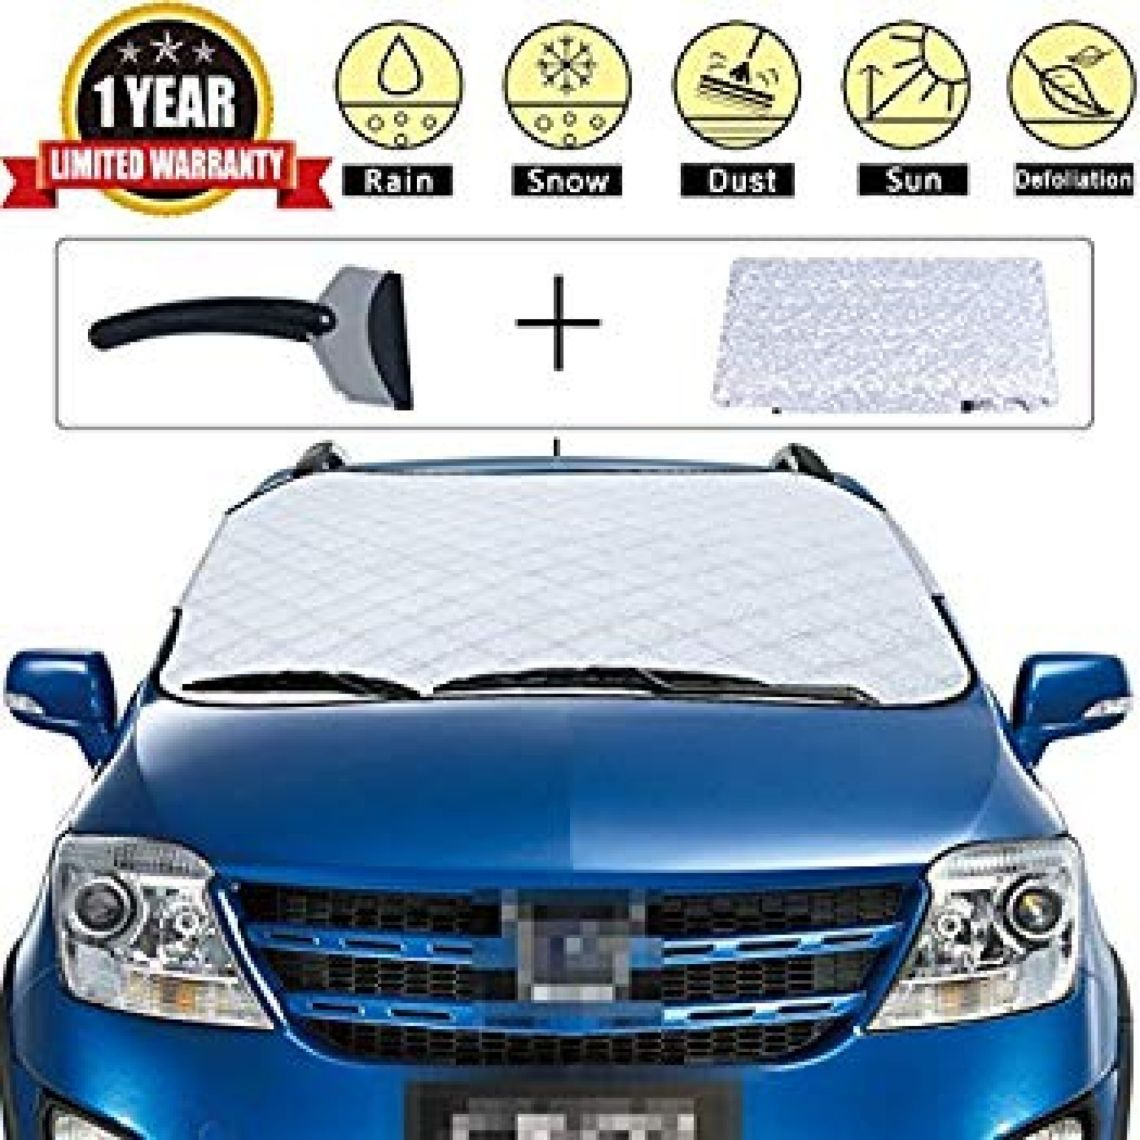 Amazon.com: TPYQdirect Car Snow Cover Premium Windshield Universal Windshield Cover for Ice and Snow & Sun Shade Protector for All Vehicles with Snow Scraper (M): Home & Kitchen